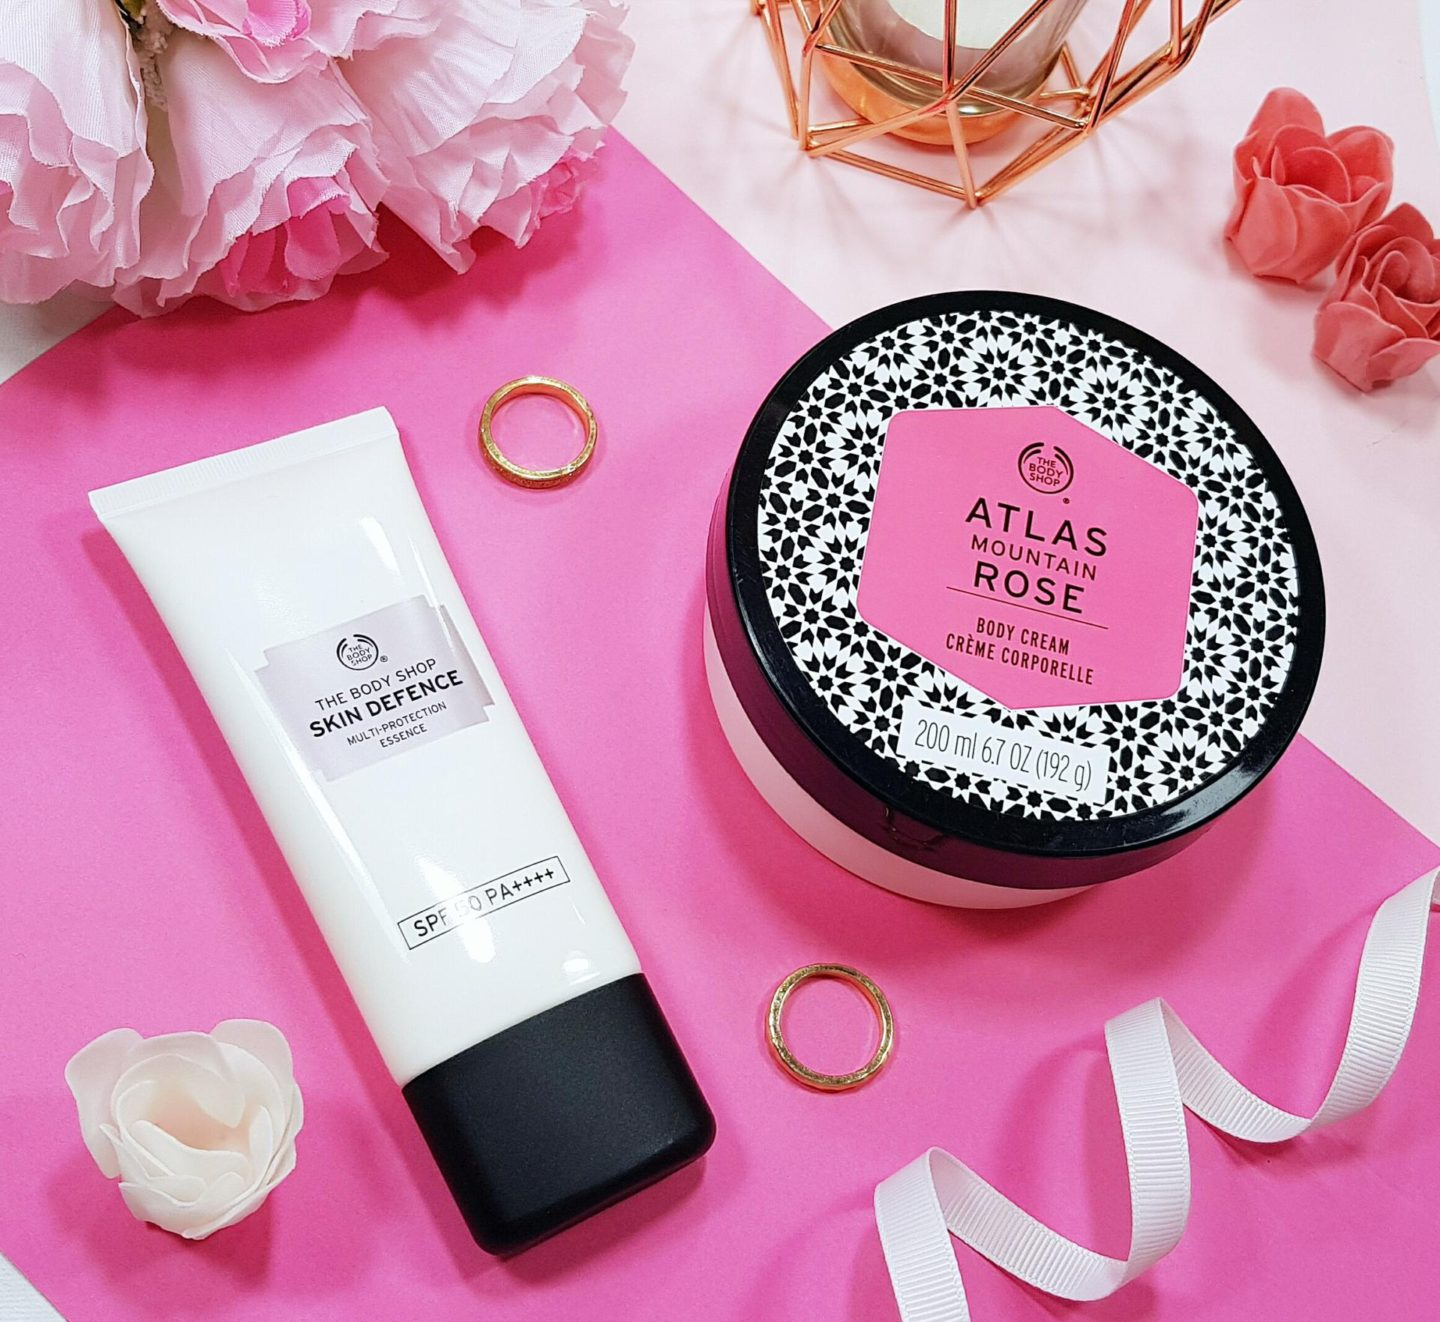 The Body Shop Atlas Mountain Rose Body Cream and The Body Shop Skin Defence Essence